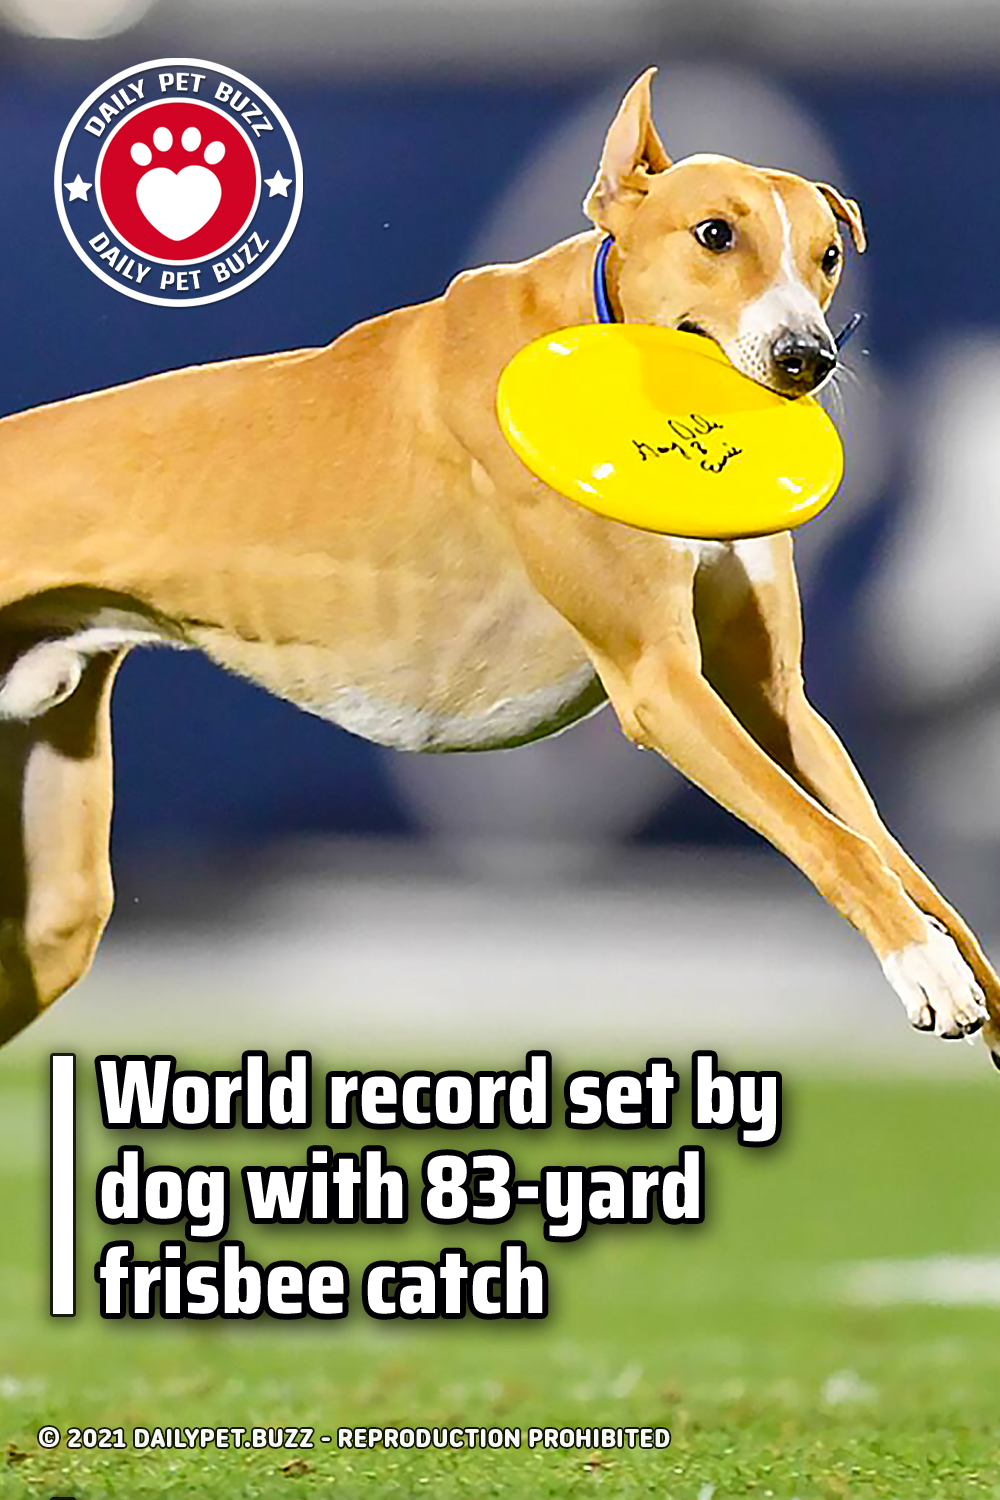 World record set by dog with 83-yard frisbee catch